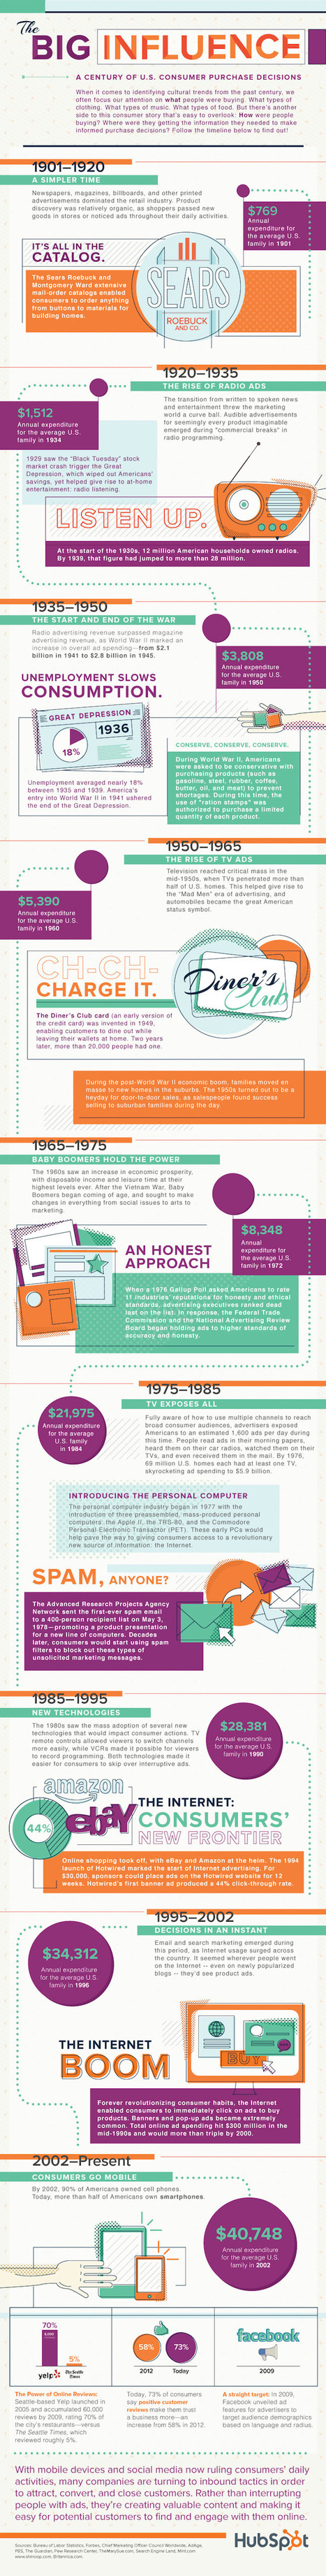 The Path to Purchase: The Evolution of How We Buy [Infographic] | СписаниеТО Интернет Маркетинг | Scoop.it